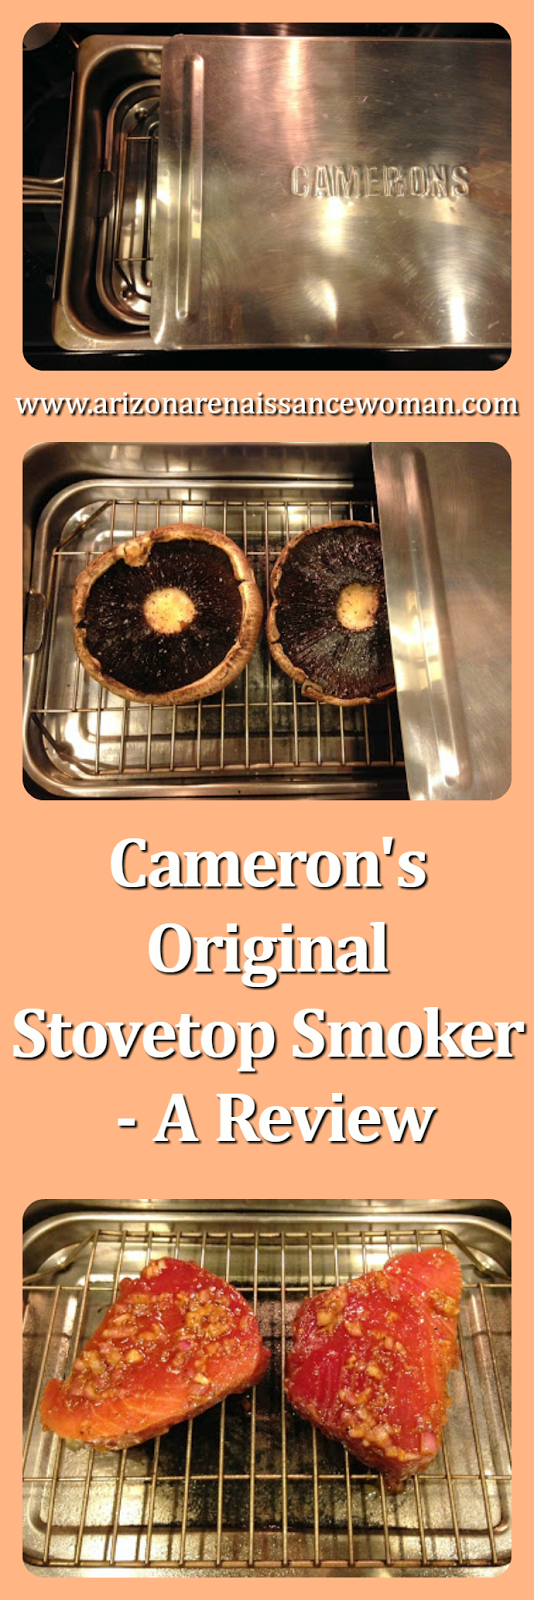 Cameron's Original Stovetop Smoker - A Review - Collage